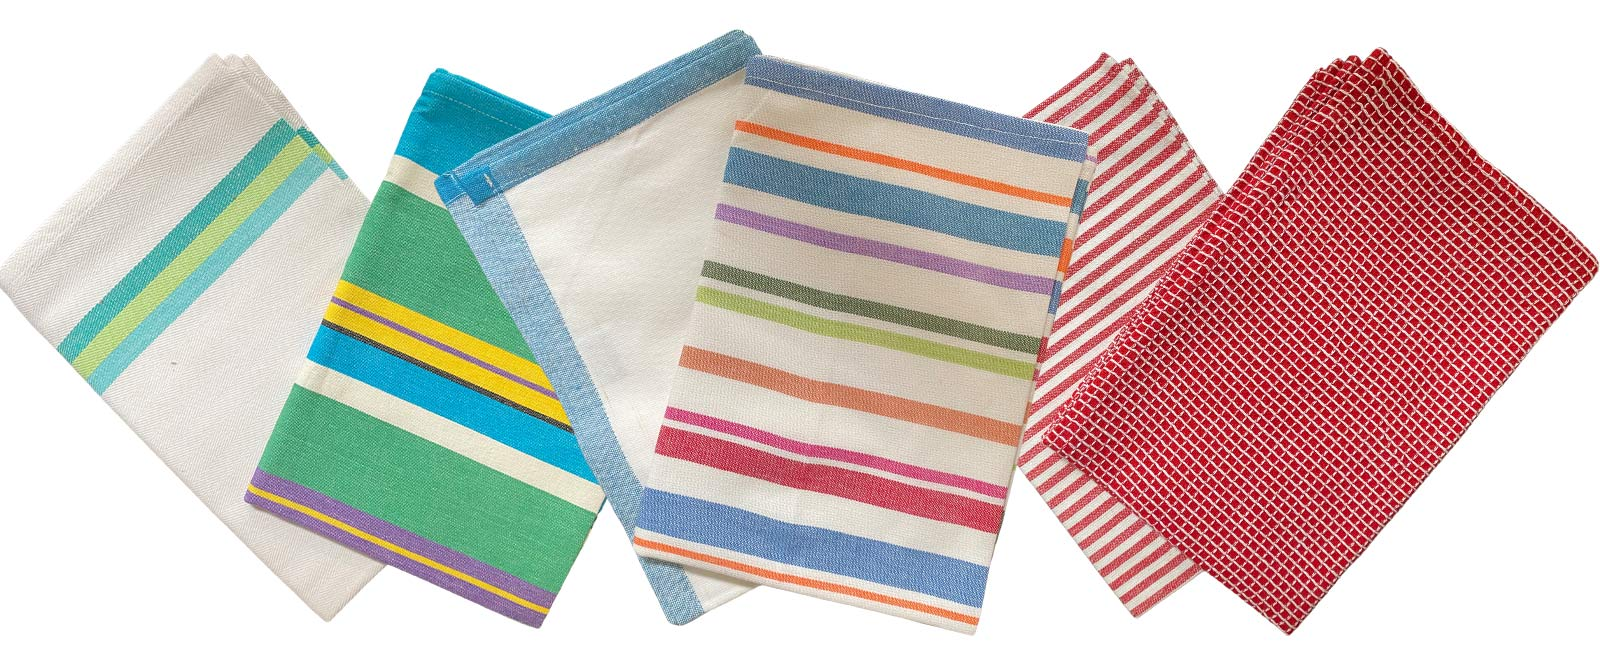 Striped Tea Towel Sets | Set of 4 Teatowels